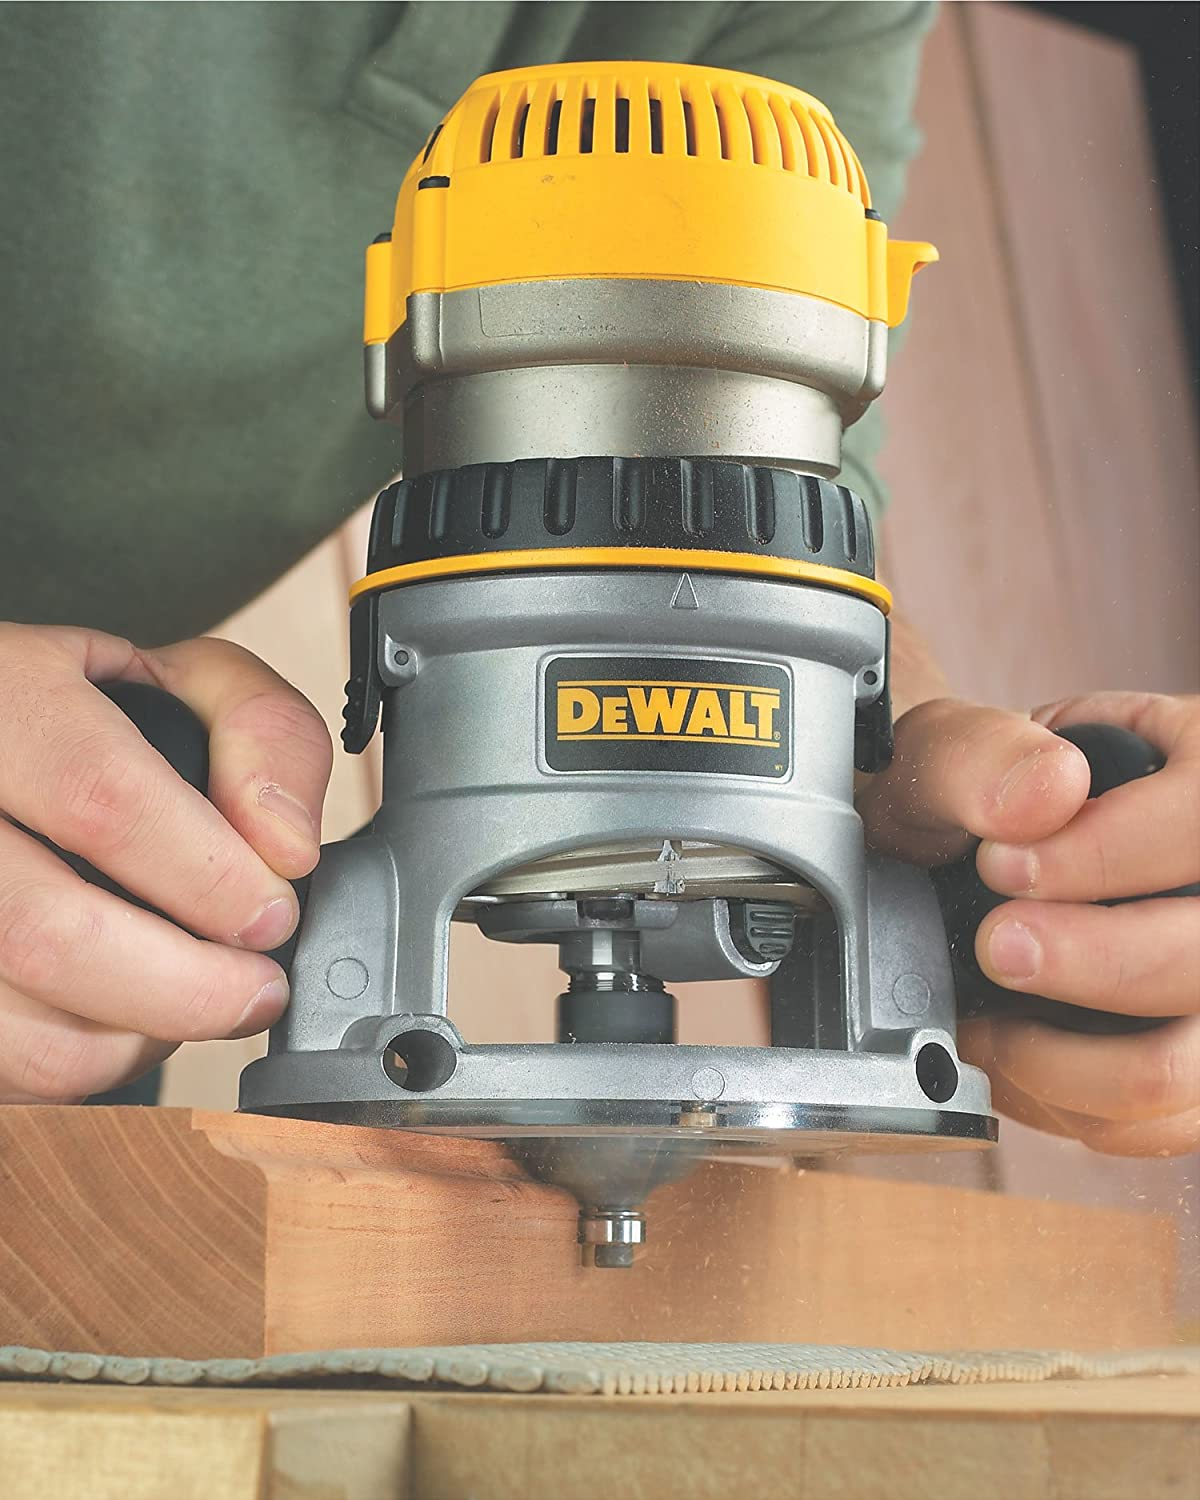 Dewalt dw618 2 14 hp electronic variable speed fixed base router dewalt dw618 2 14 hp electronic variable speed fixed base router power routers amazon greentooth